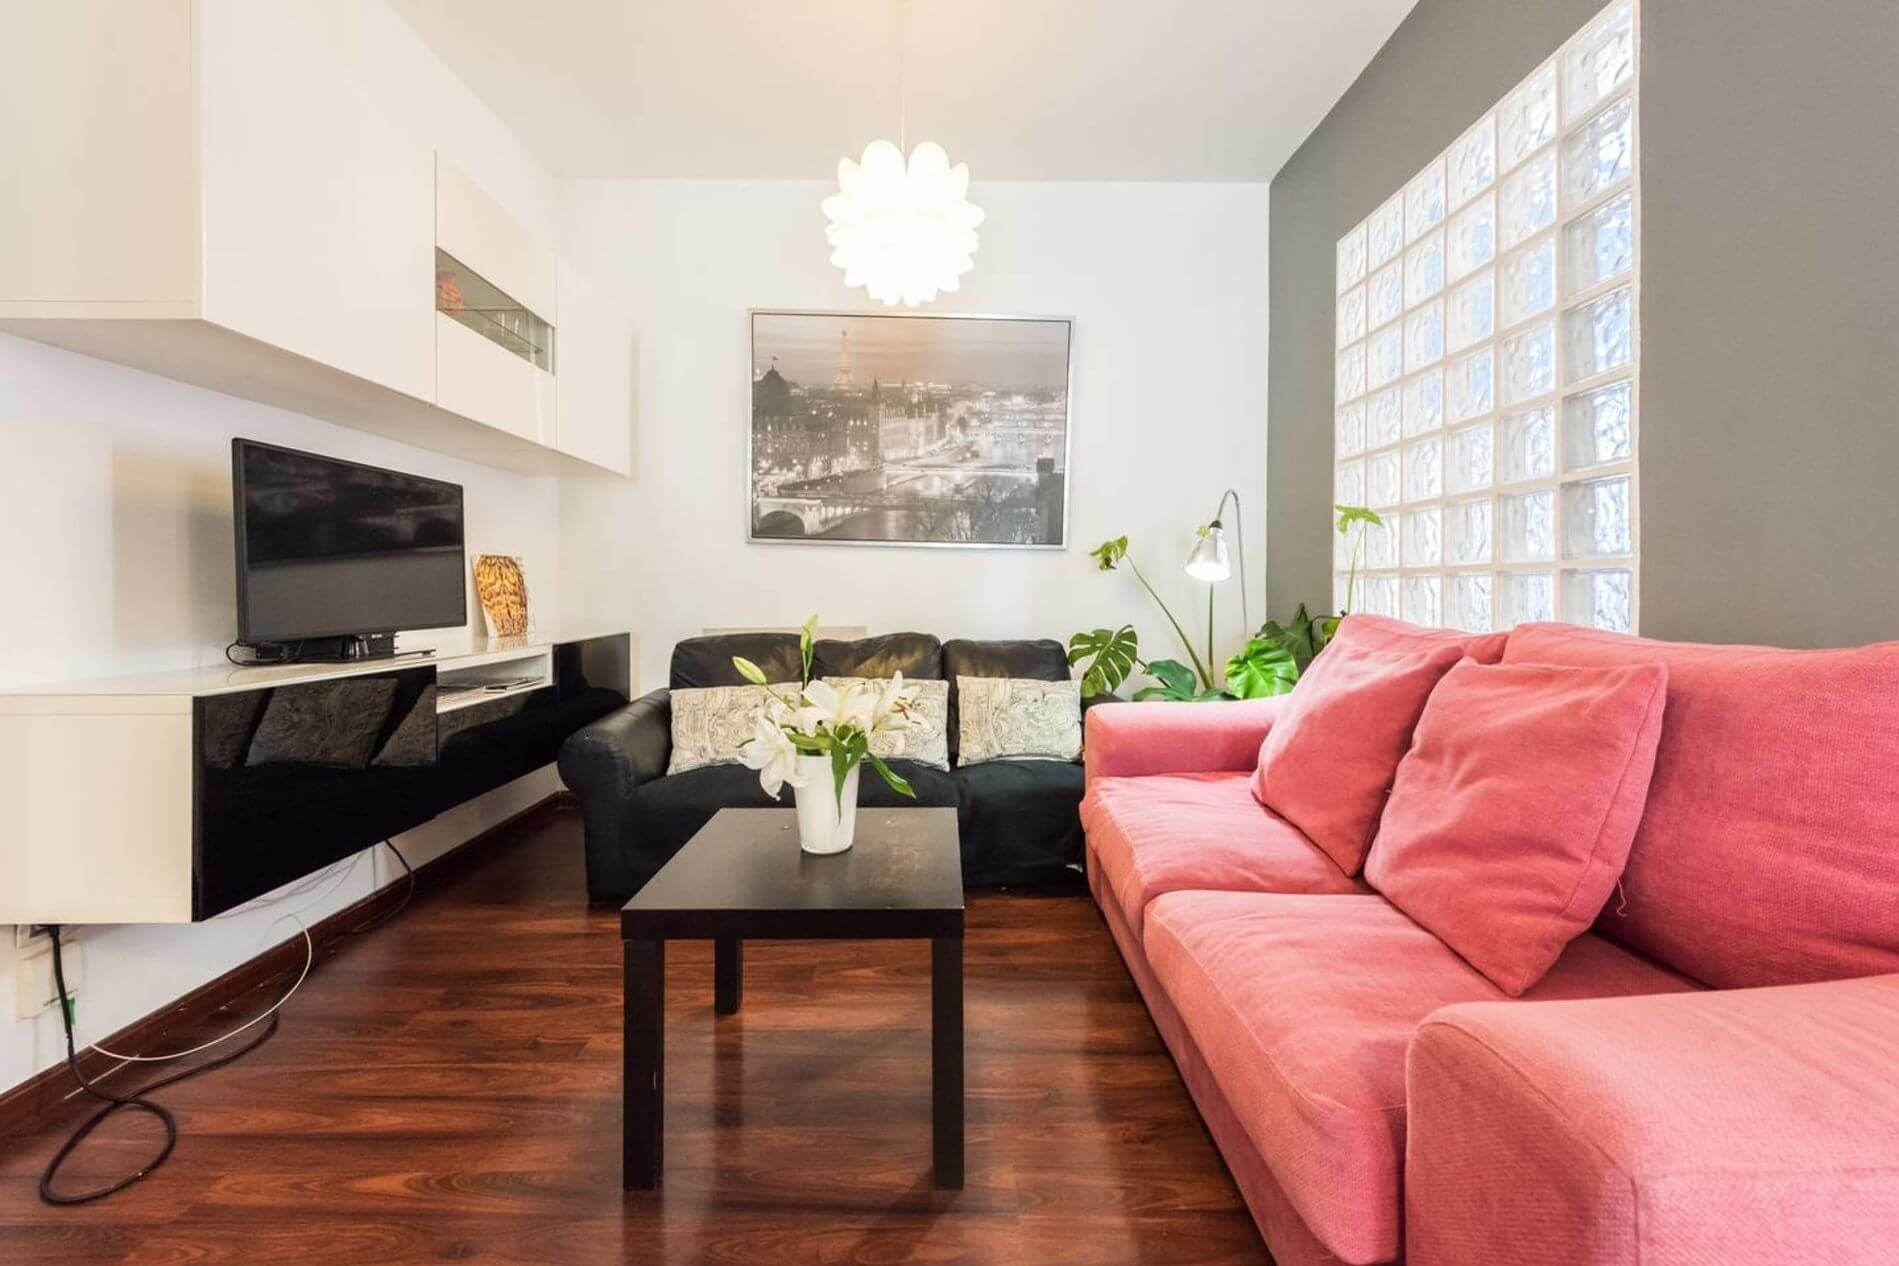 Stylish serviced accommodation in the heart of Madrid that allows pets